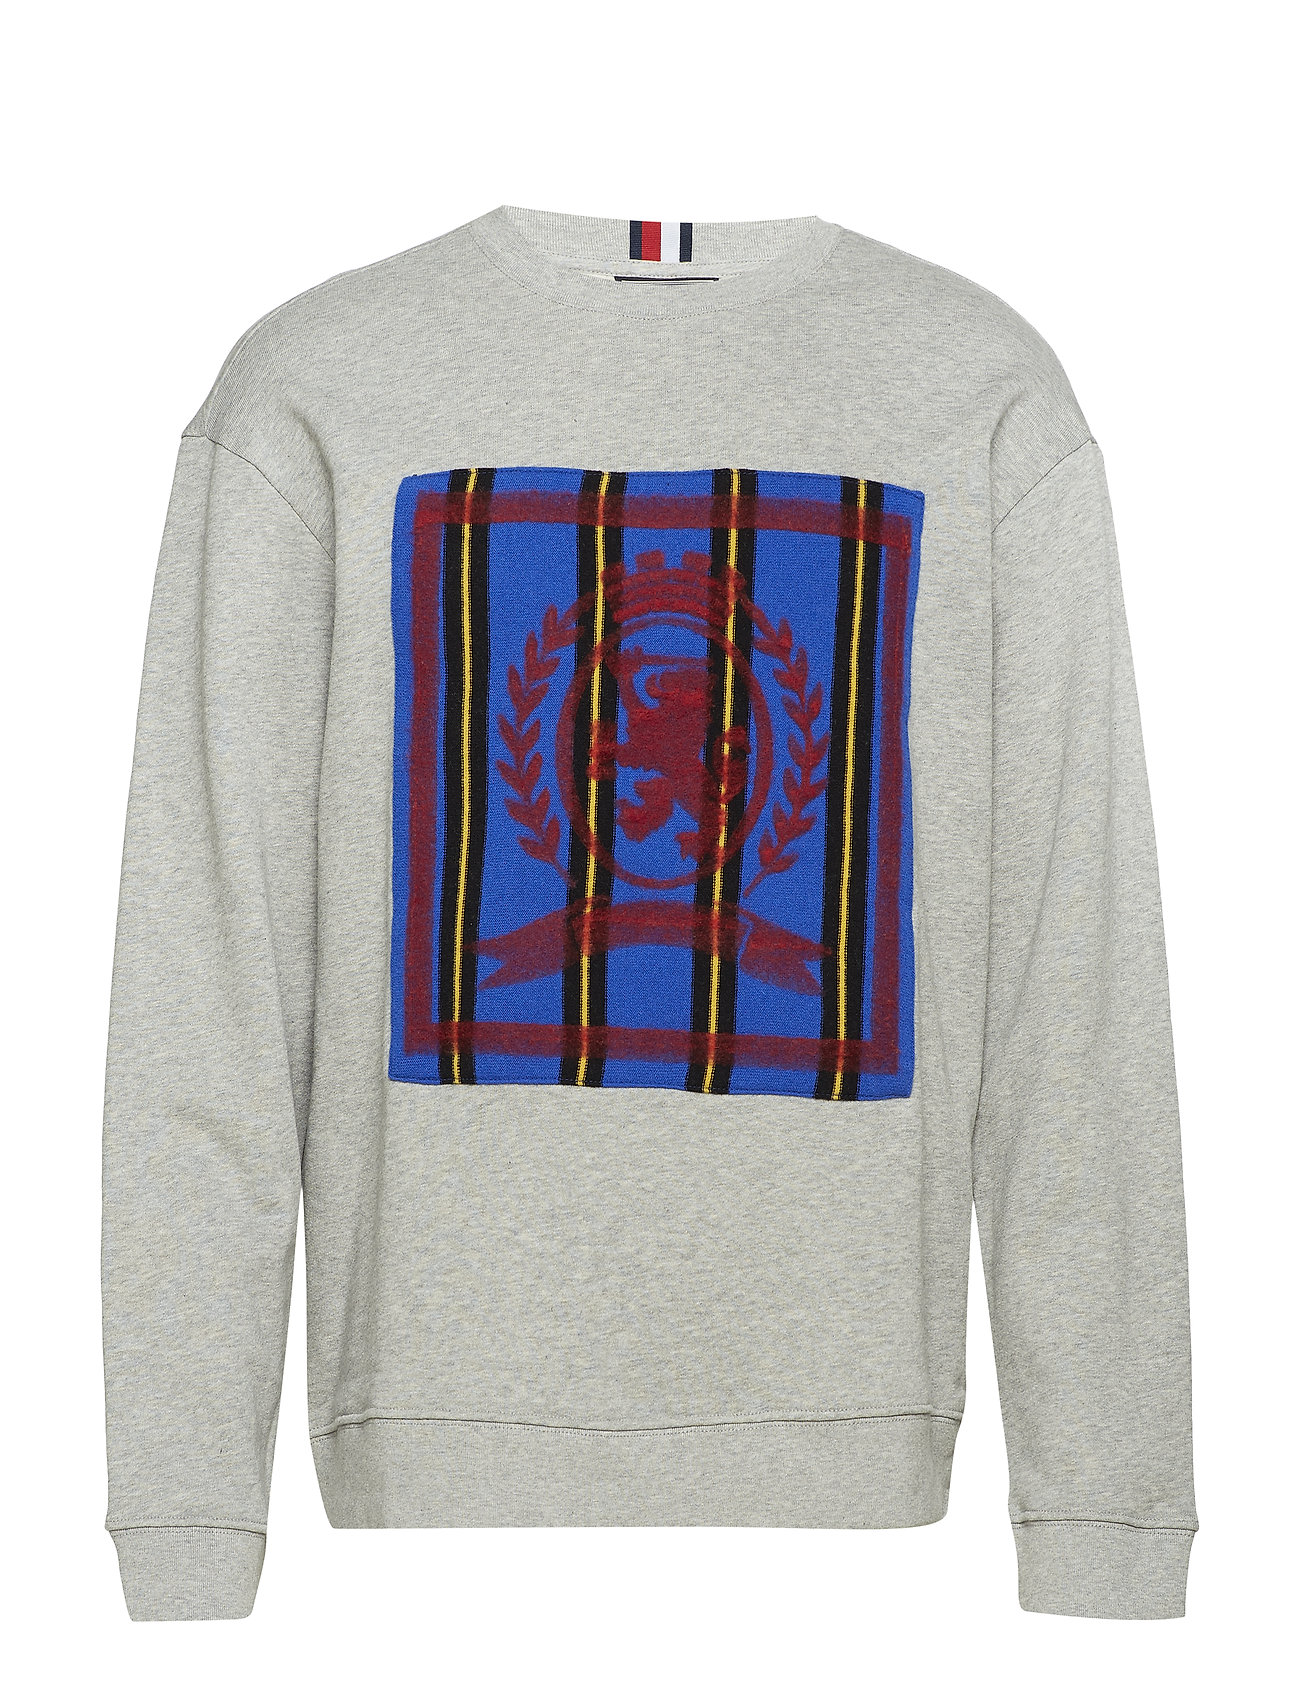 Hilfiger Collection HC CREST NEEDLE PUNCH SWEATSHIRT - SILVER FOG HEATHER